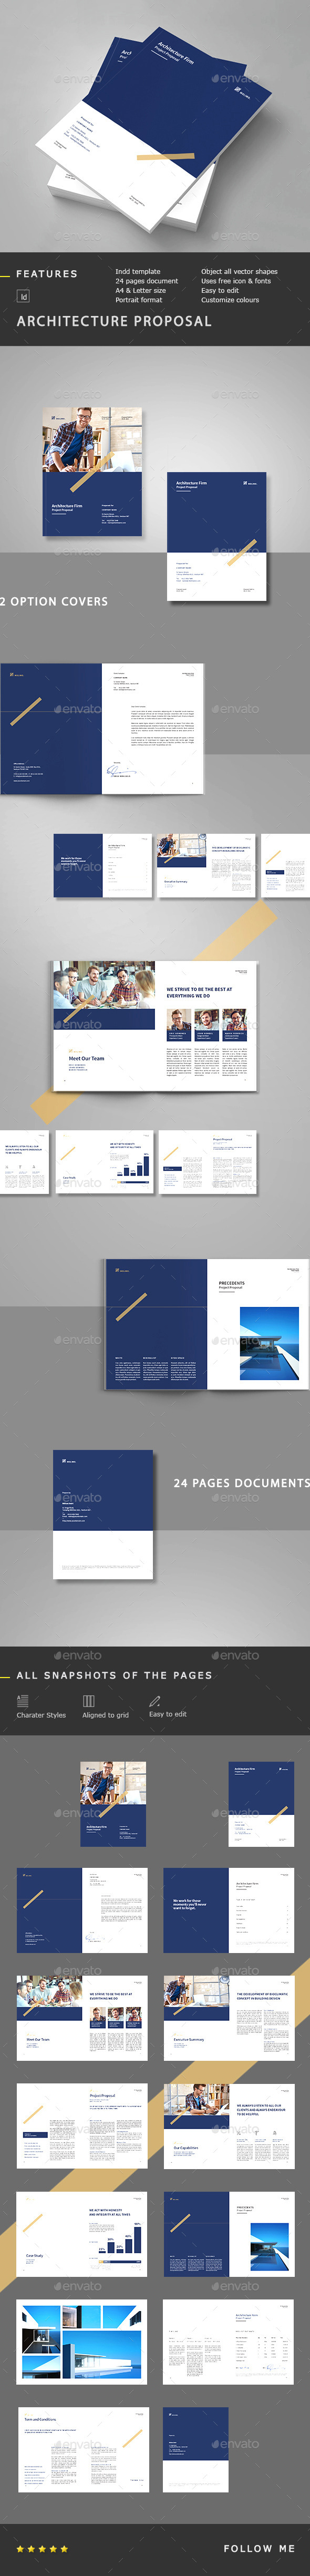 Architecture Proposal  - Proposals & Invoices Stationery